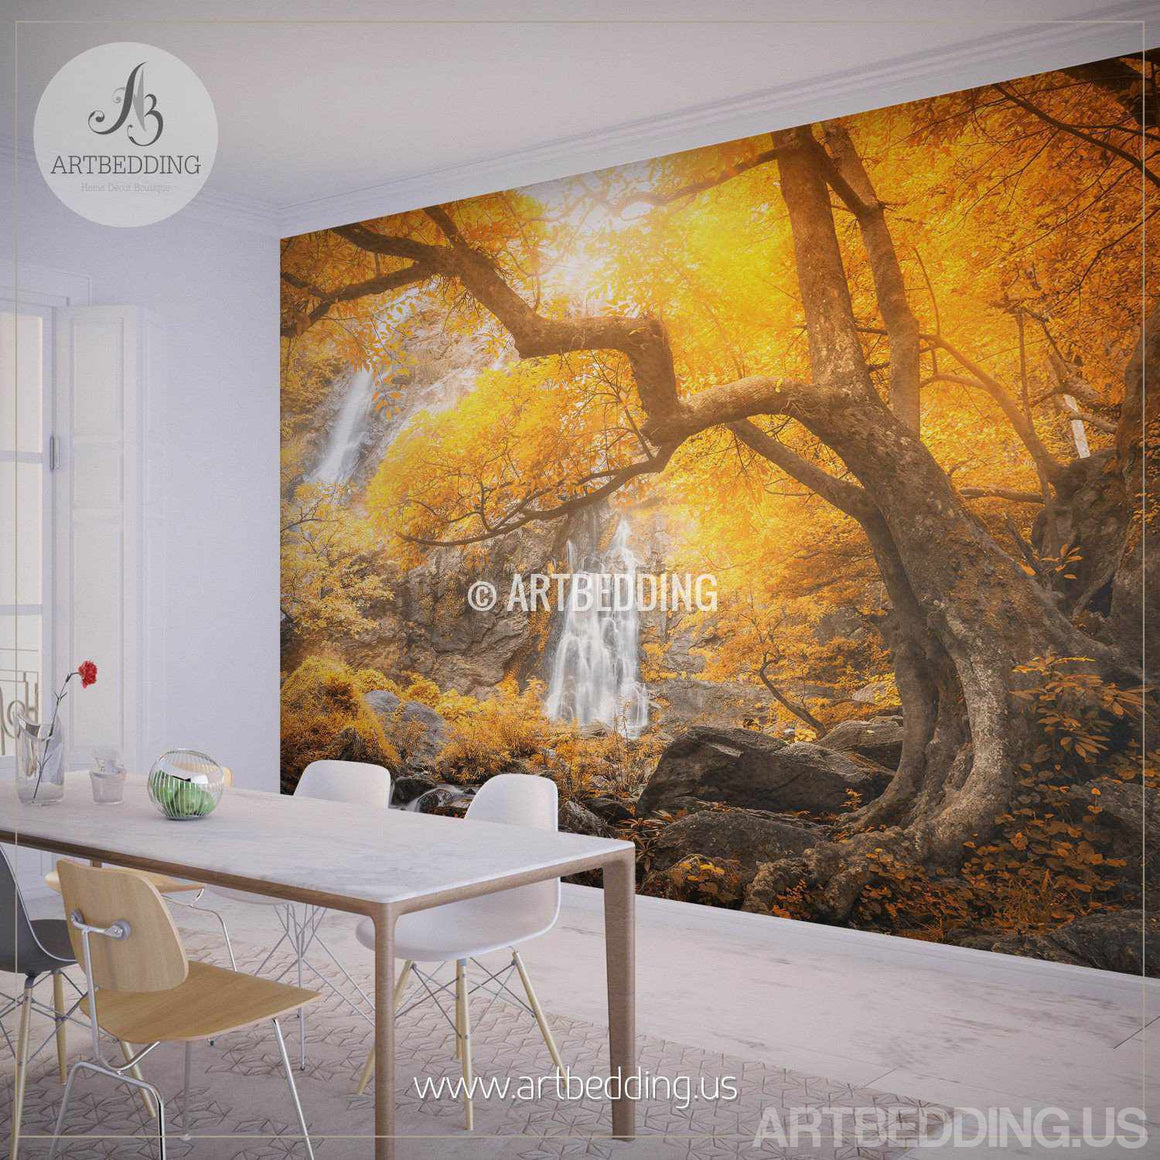 Autumn Waterfall Wall Mural, Photo wall Mural Self Adhesive Peel & Stick, Nature wall mural decor wall mural